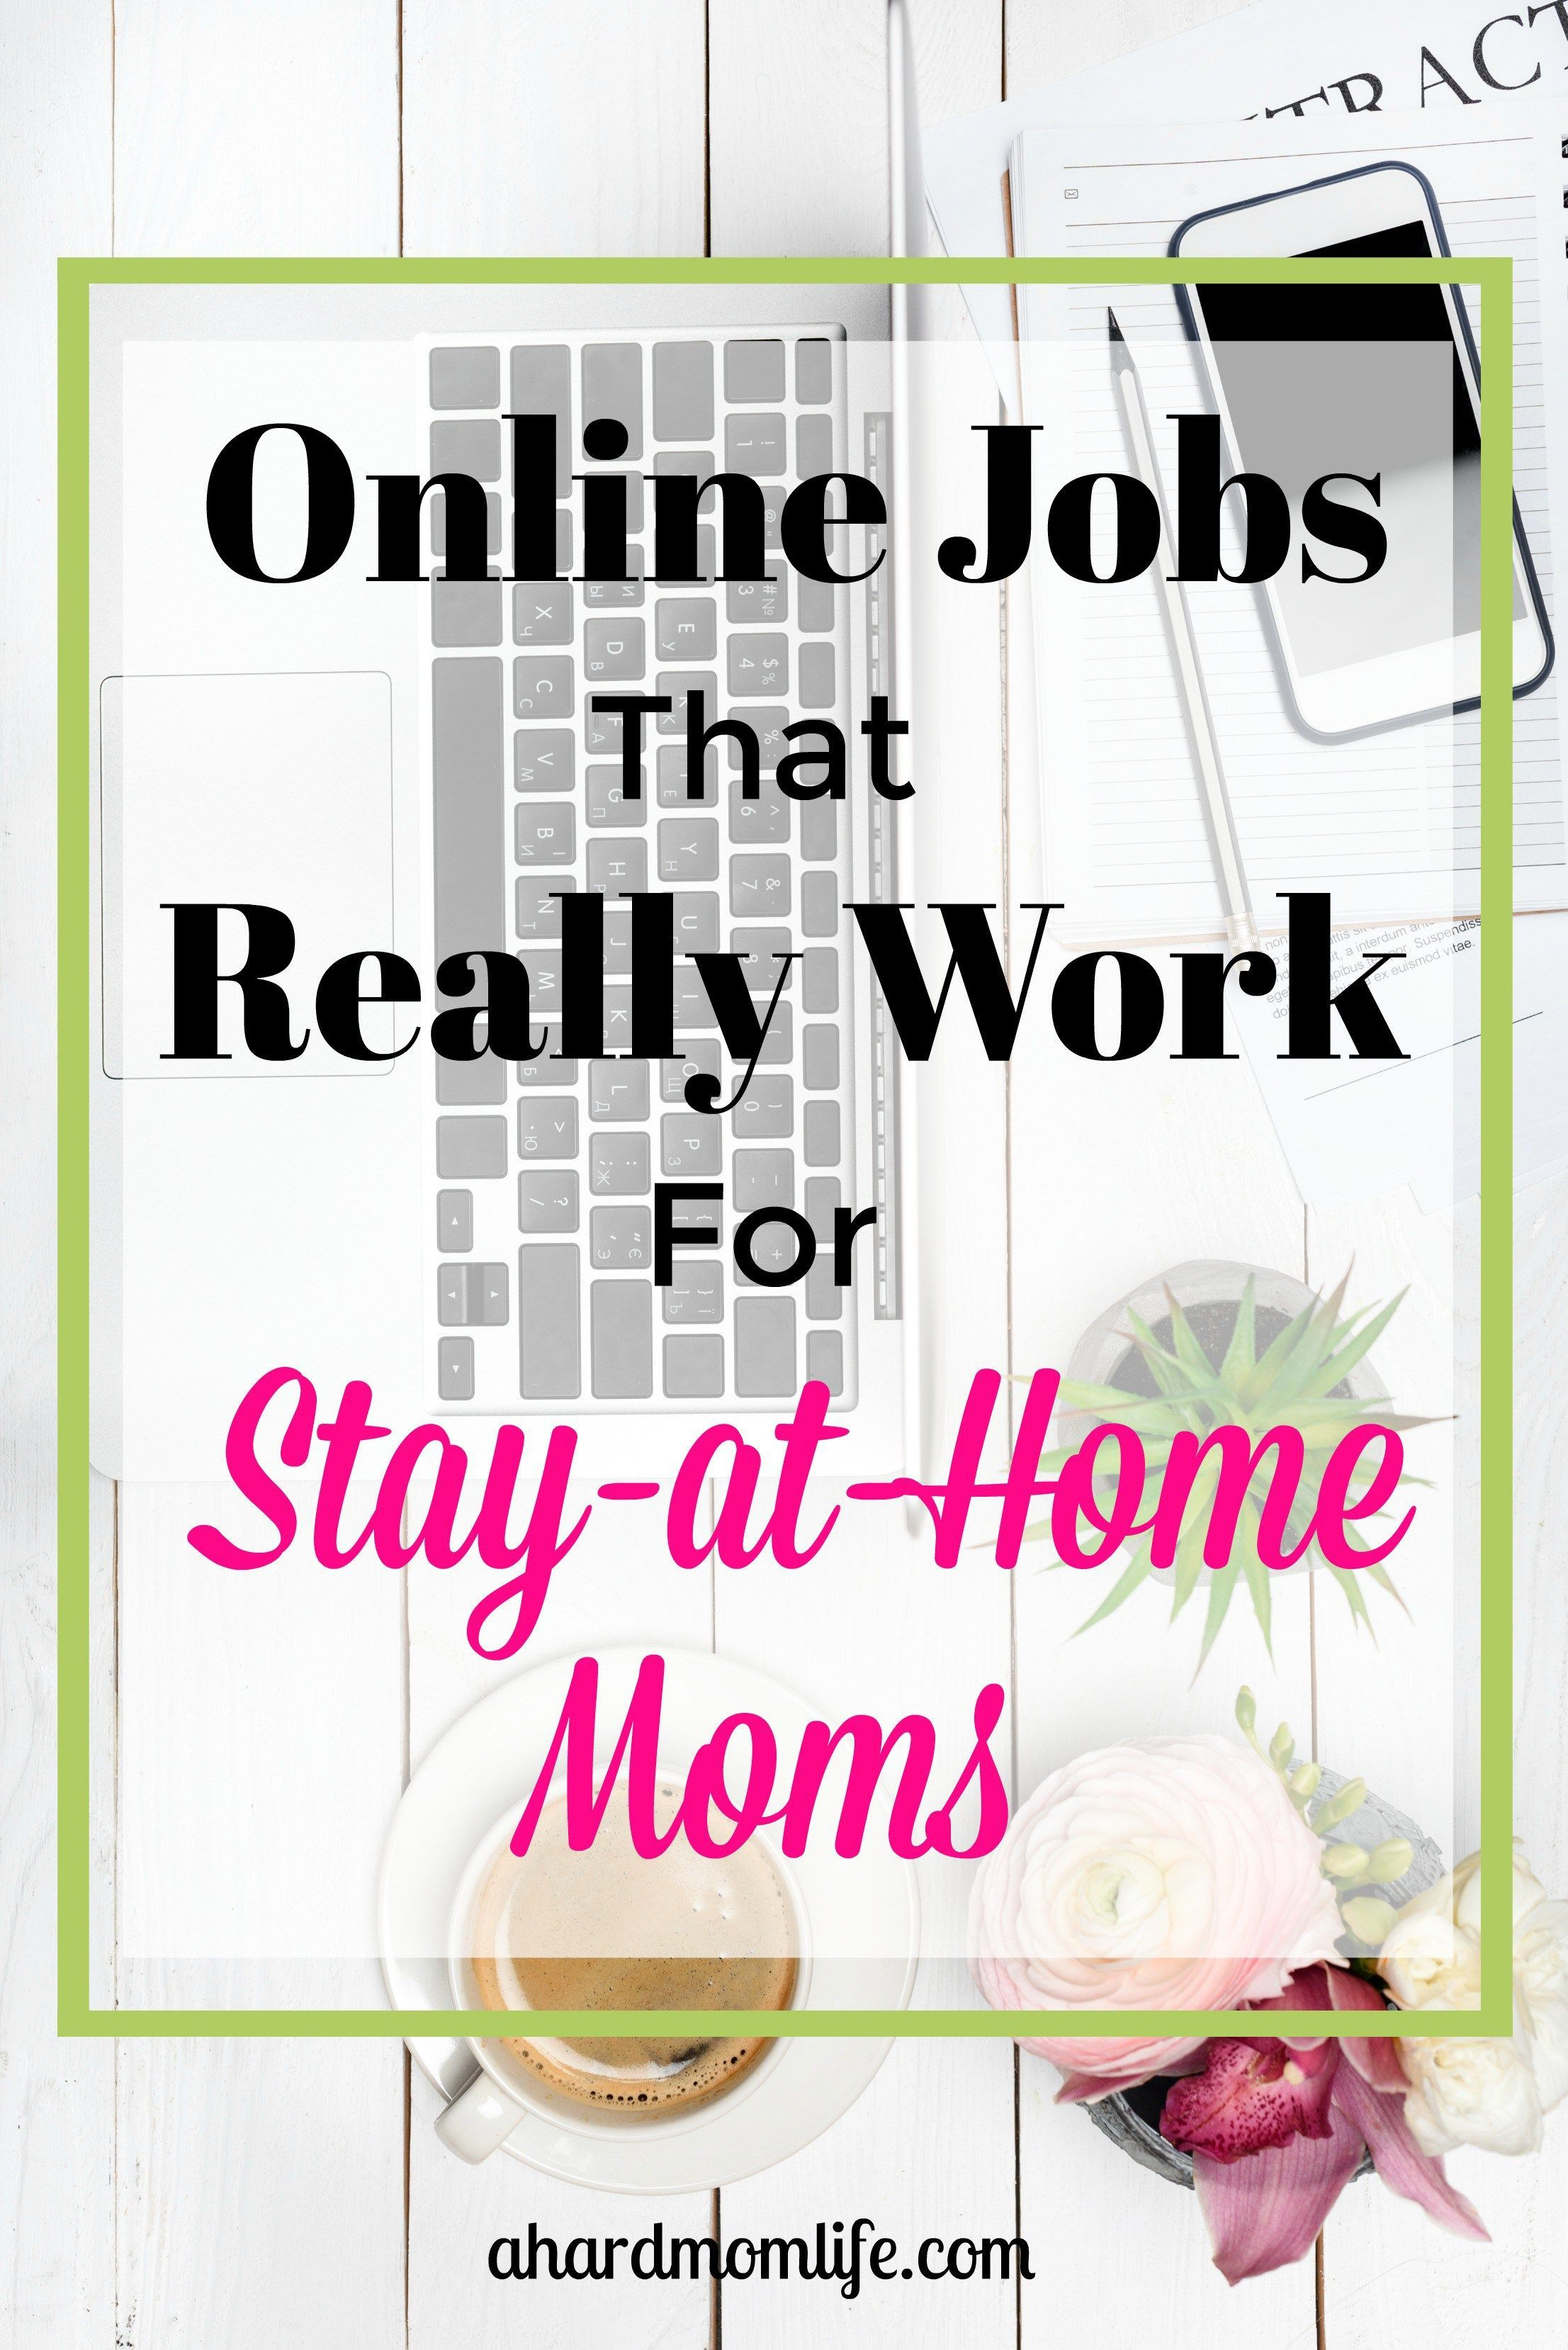 Online Jobs That Really Work for Stay-at-Home Moms | Business